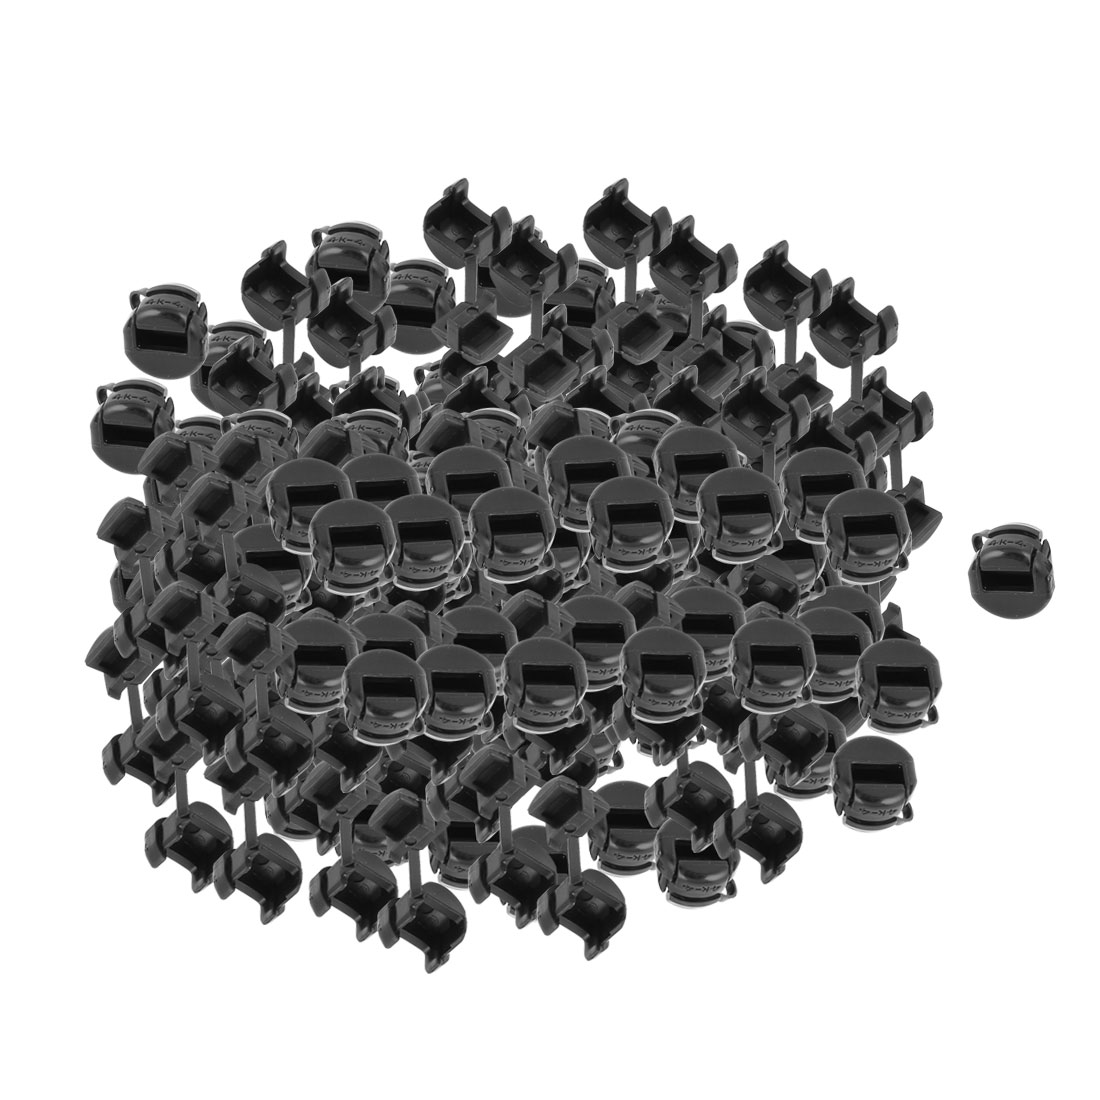 200Pcs HDB-4K-4 Round Cable Wire Strain Relief Bush Grommet 11mm Length